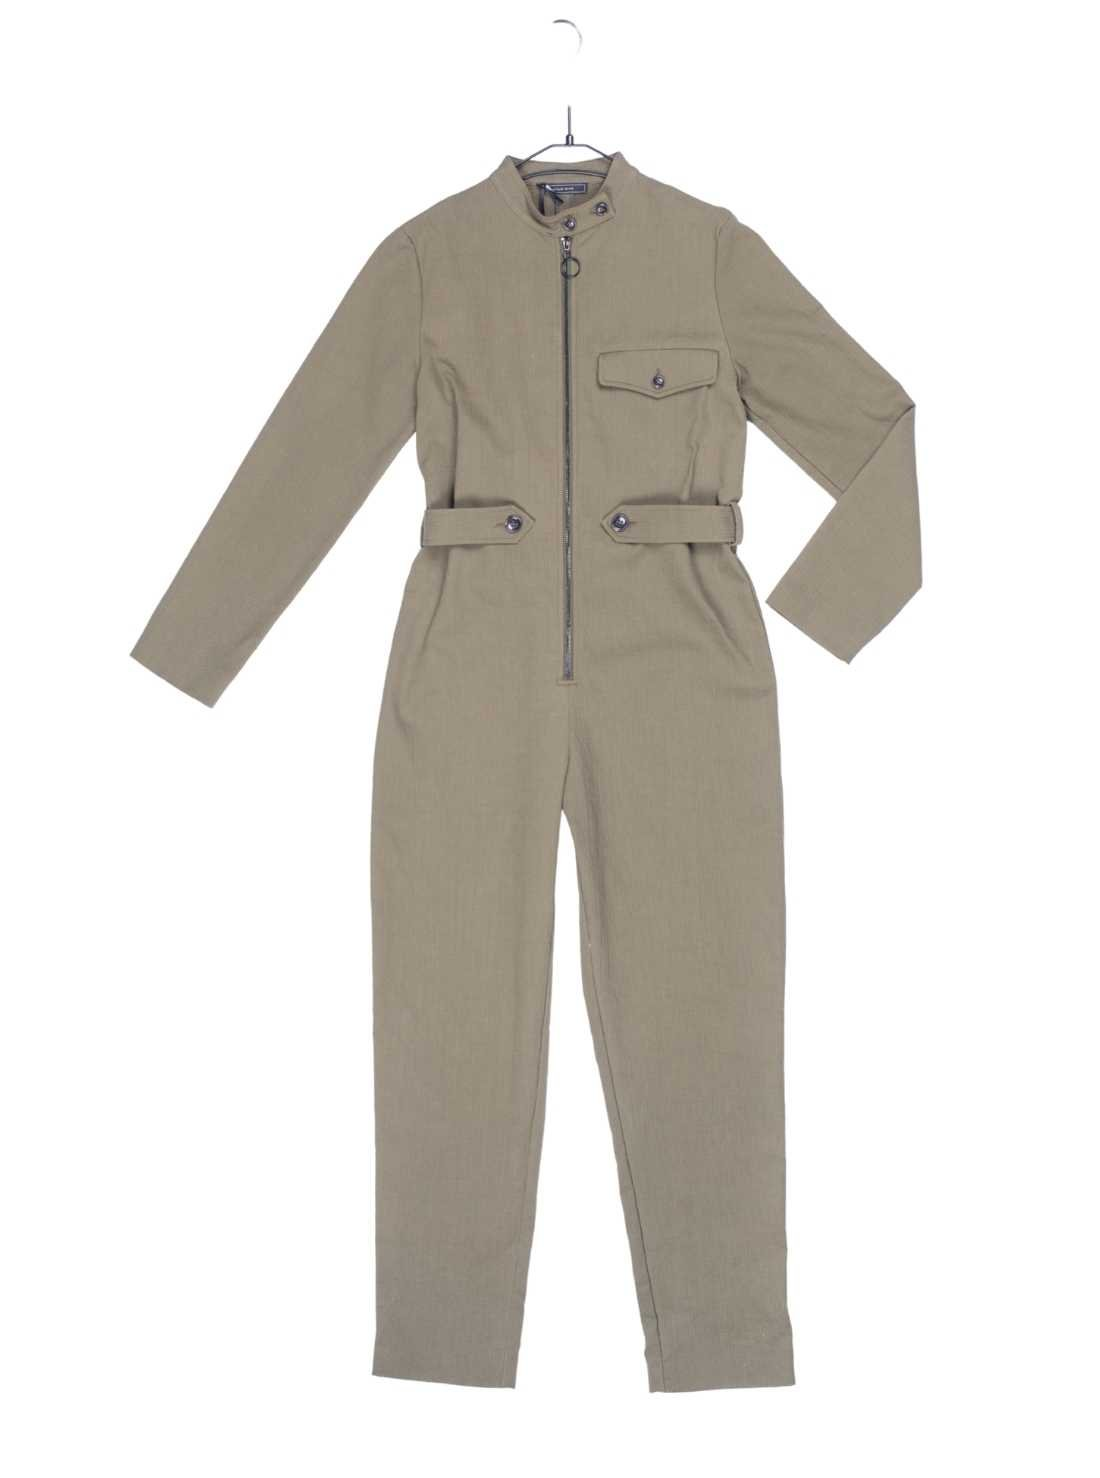 Ladies Long Sleeves Cotton Jaquard Overall